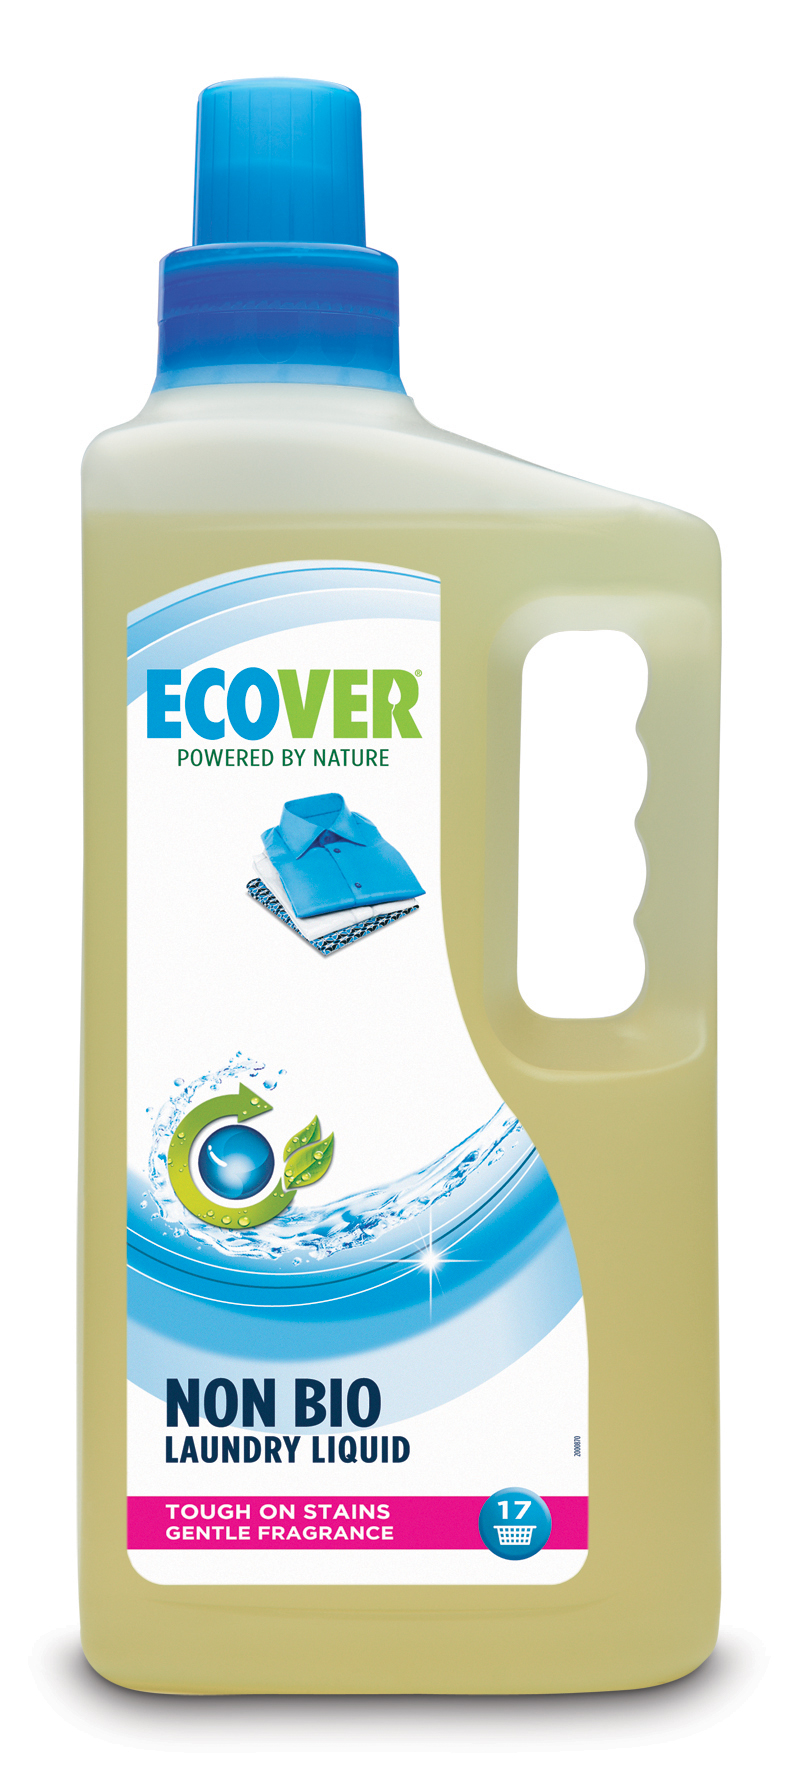 Ecover laundry